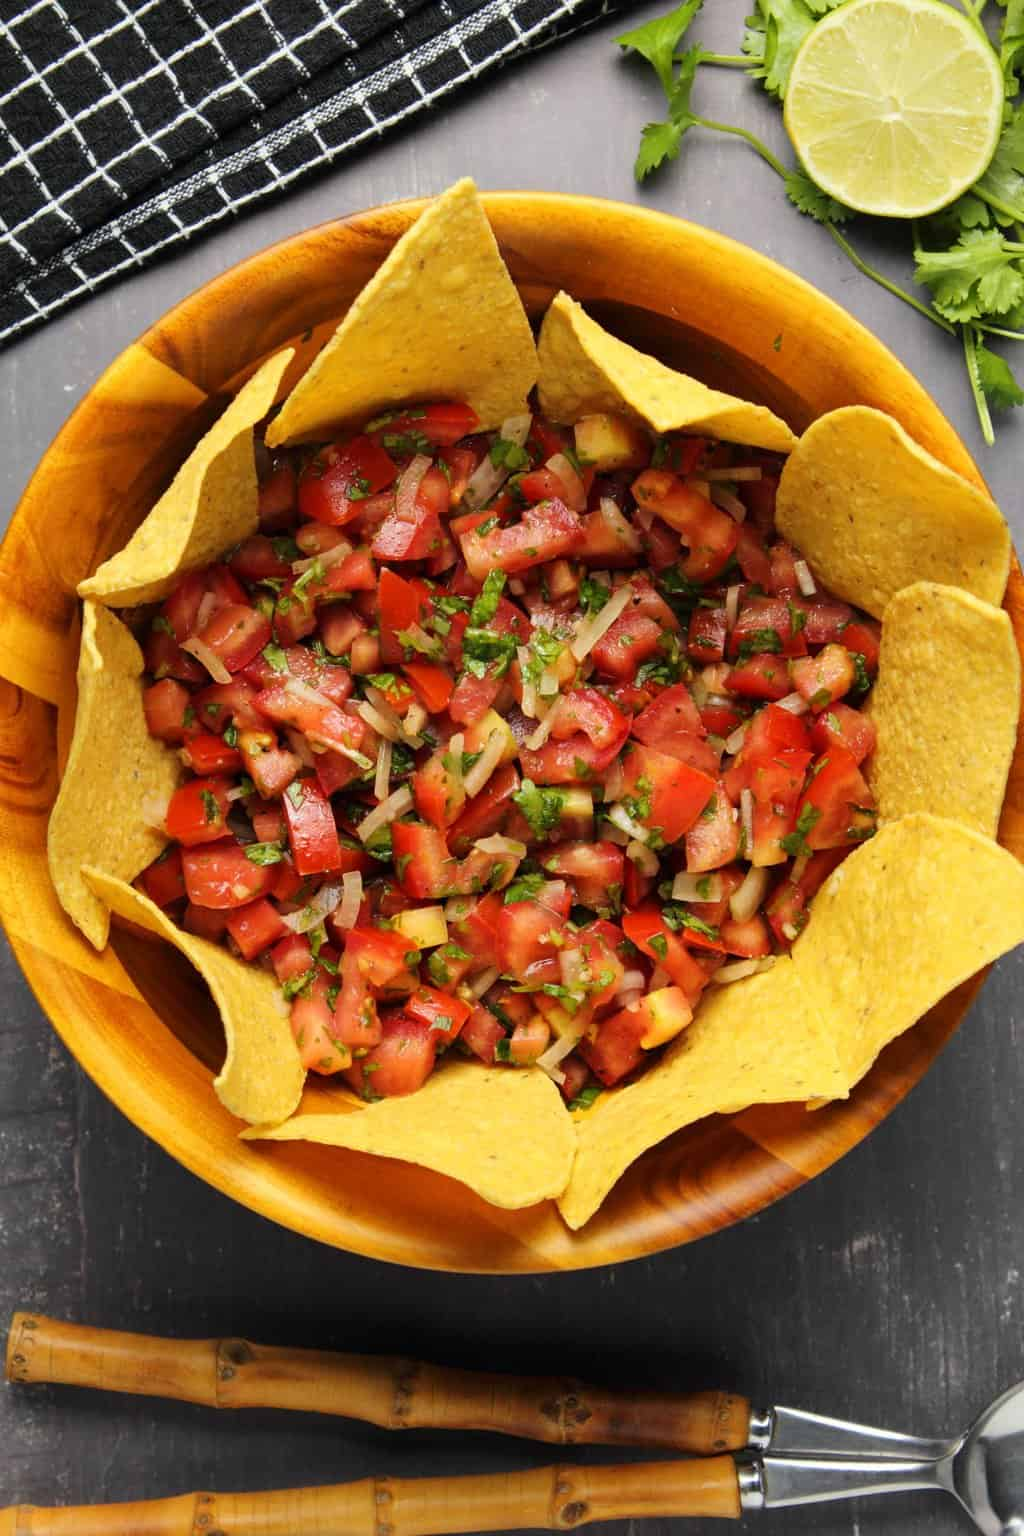 Pico de gallo in a wooden bowl surrounded by corn chips.